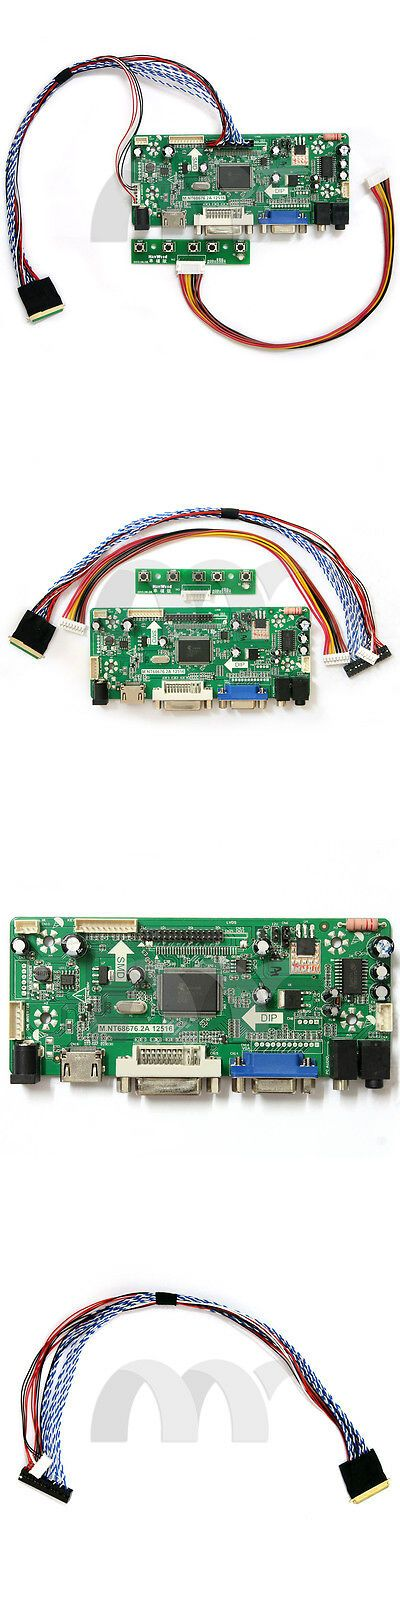 Server Boards 71509: Lcd Controller Board Driver Kit For